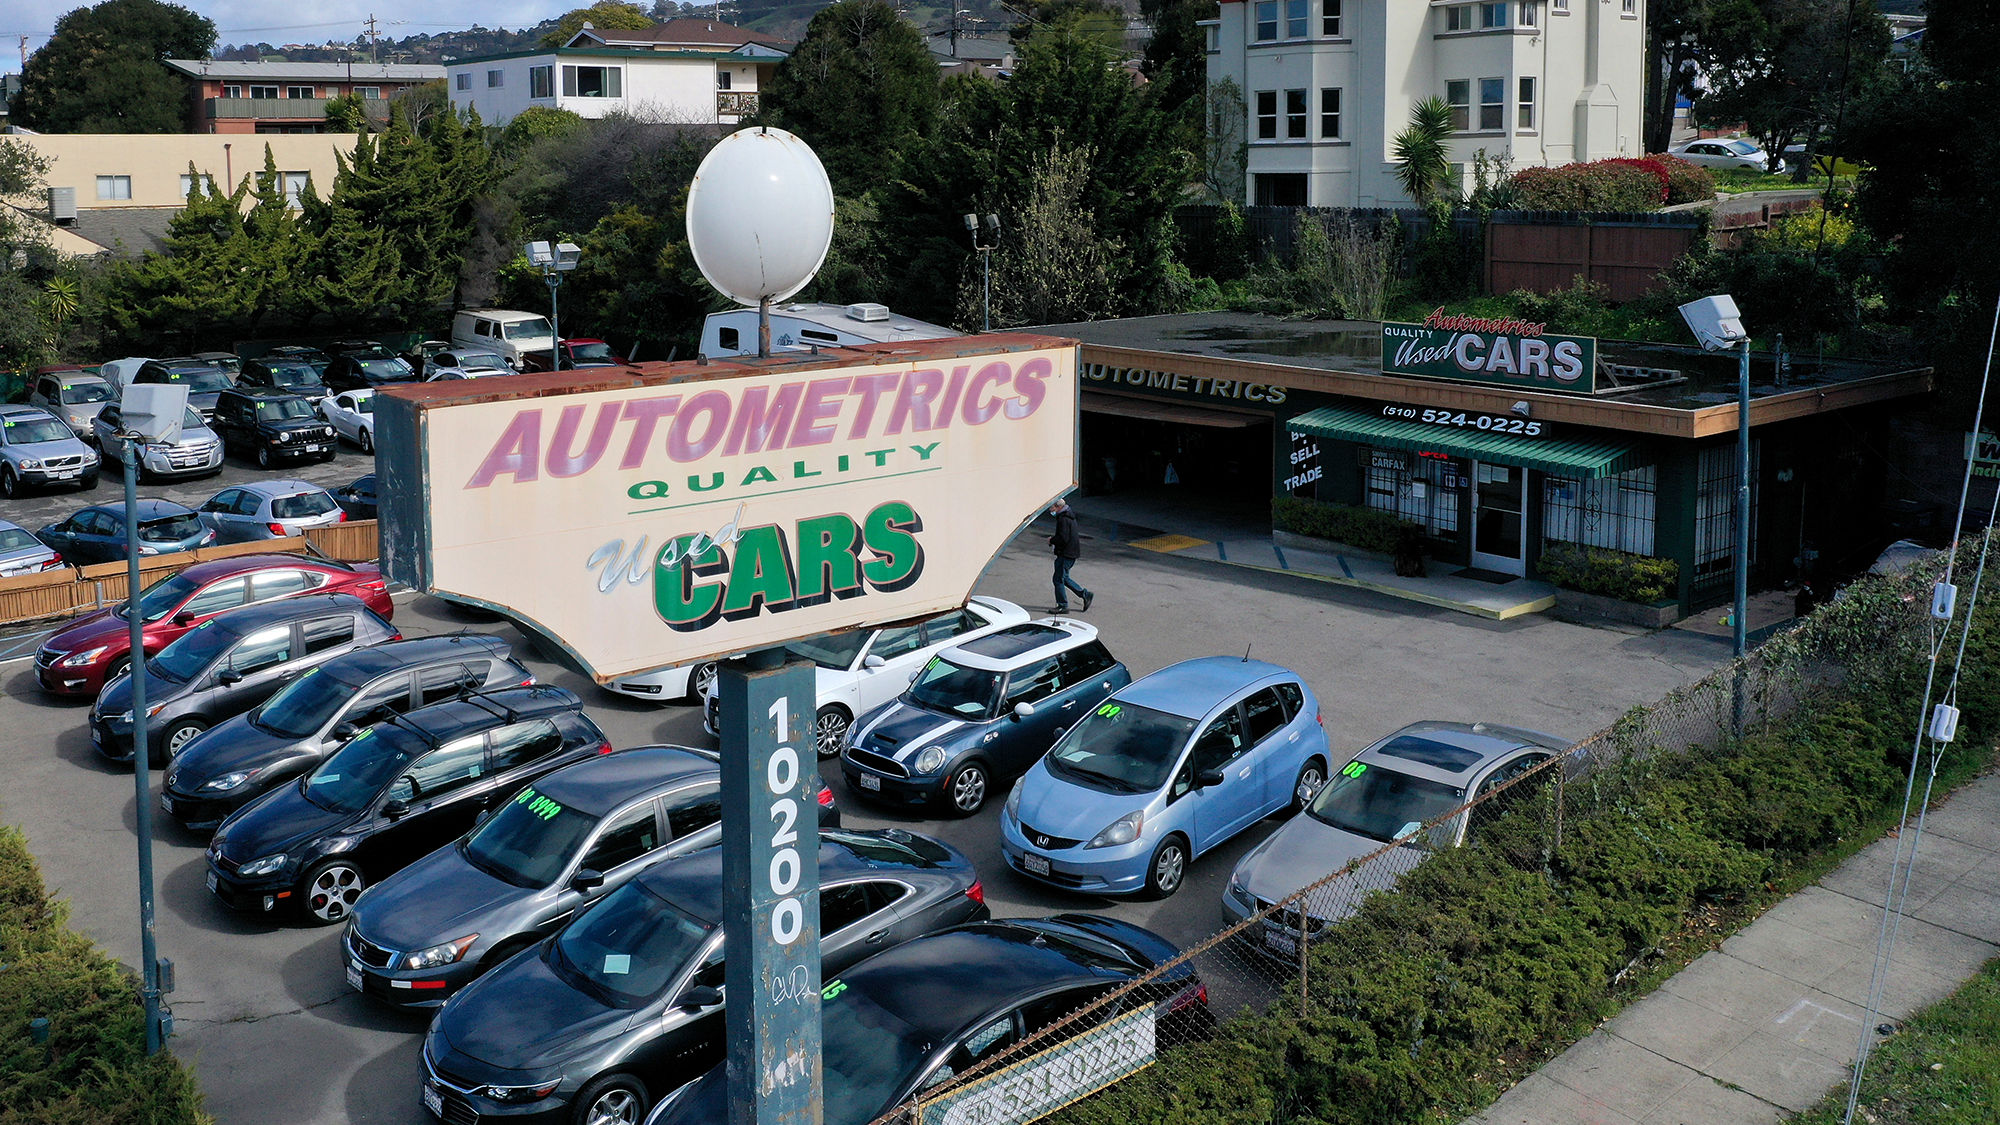 Used cars sit on the sales lot at Autometrics Quality Used Cars on March 15 in El Cerrito, California.